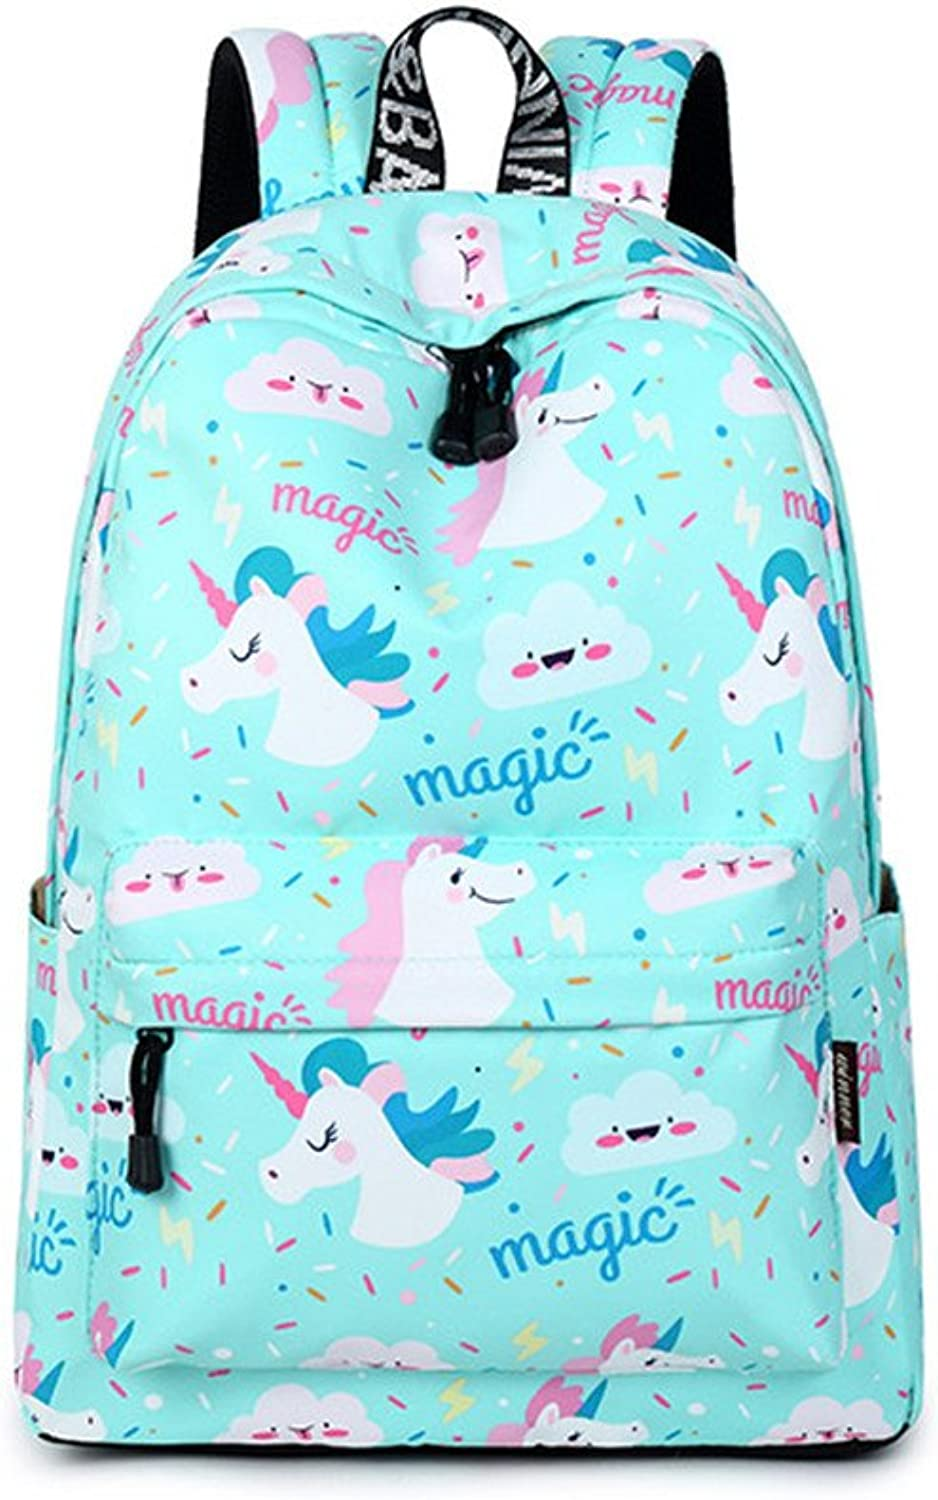 Waterproof Canvas Animal Printing Women School Backpack 1415.6 inch Travel Laptop Bag Pack bluee Kawaii Bookbag for Girl Sky bluee 14 inches